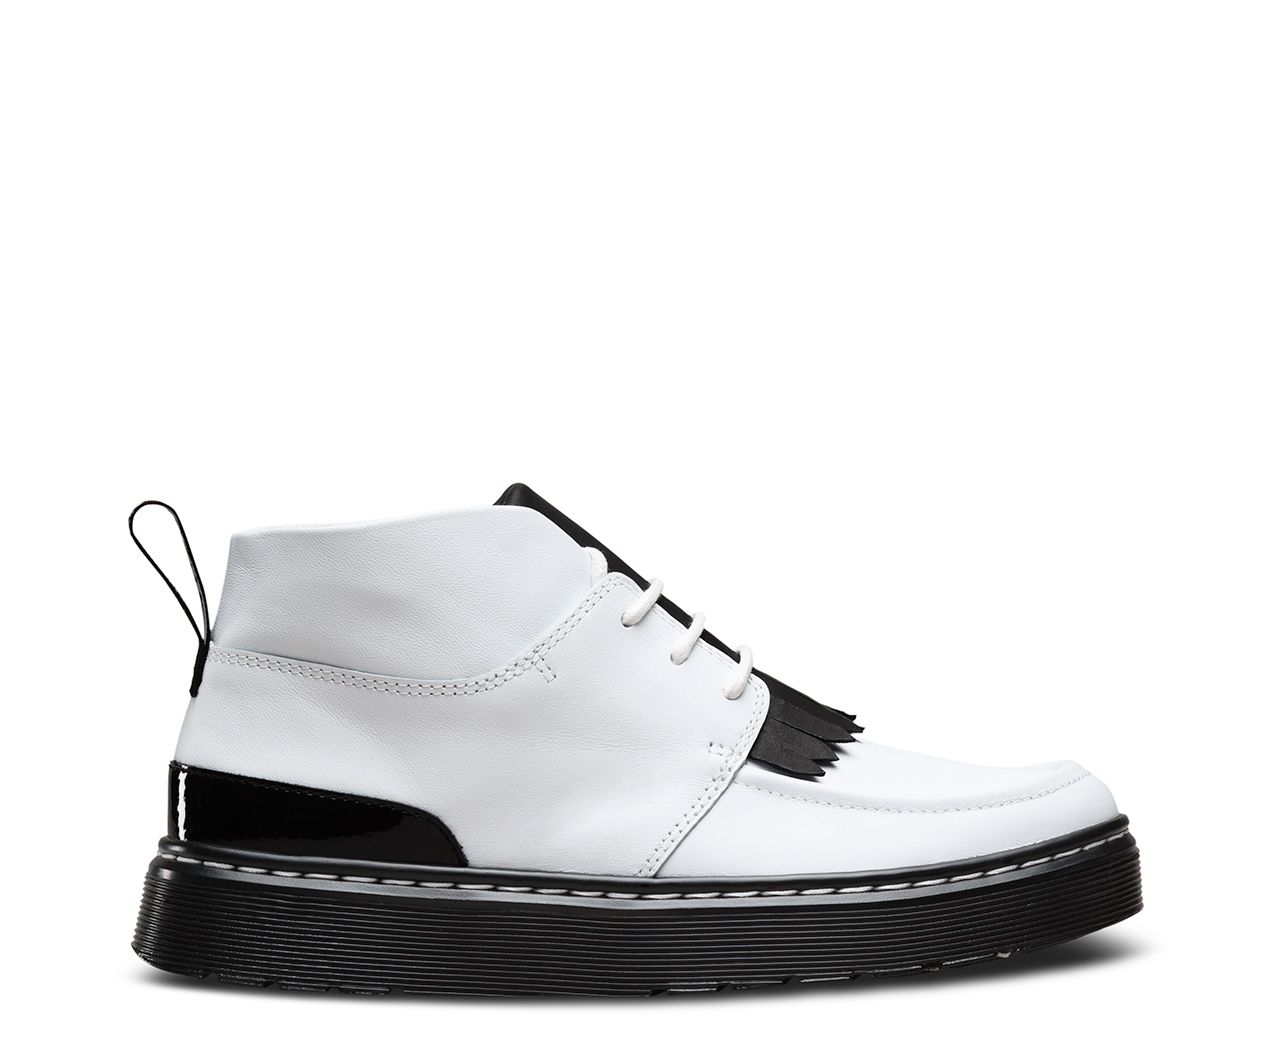 The Jemima boot is a 3-eye Chukka style with high contrast black and white  colorblocking and kiltie fringe fashion detail — plus classic Dr. Martens  comfort ...